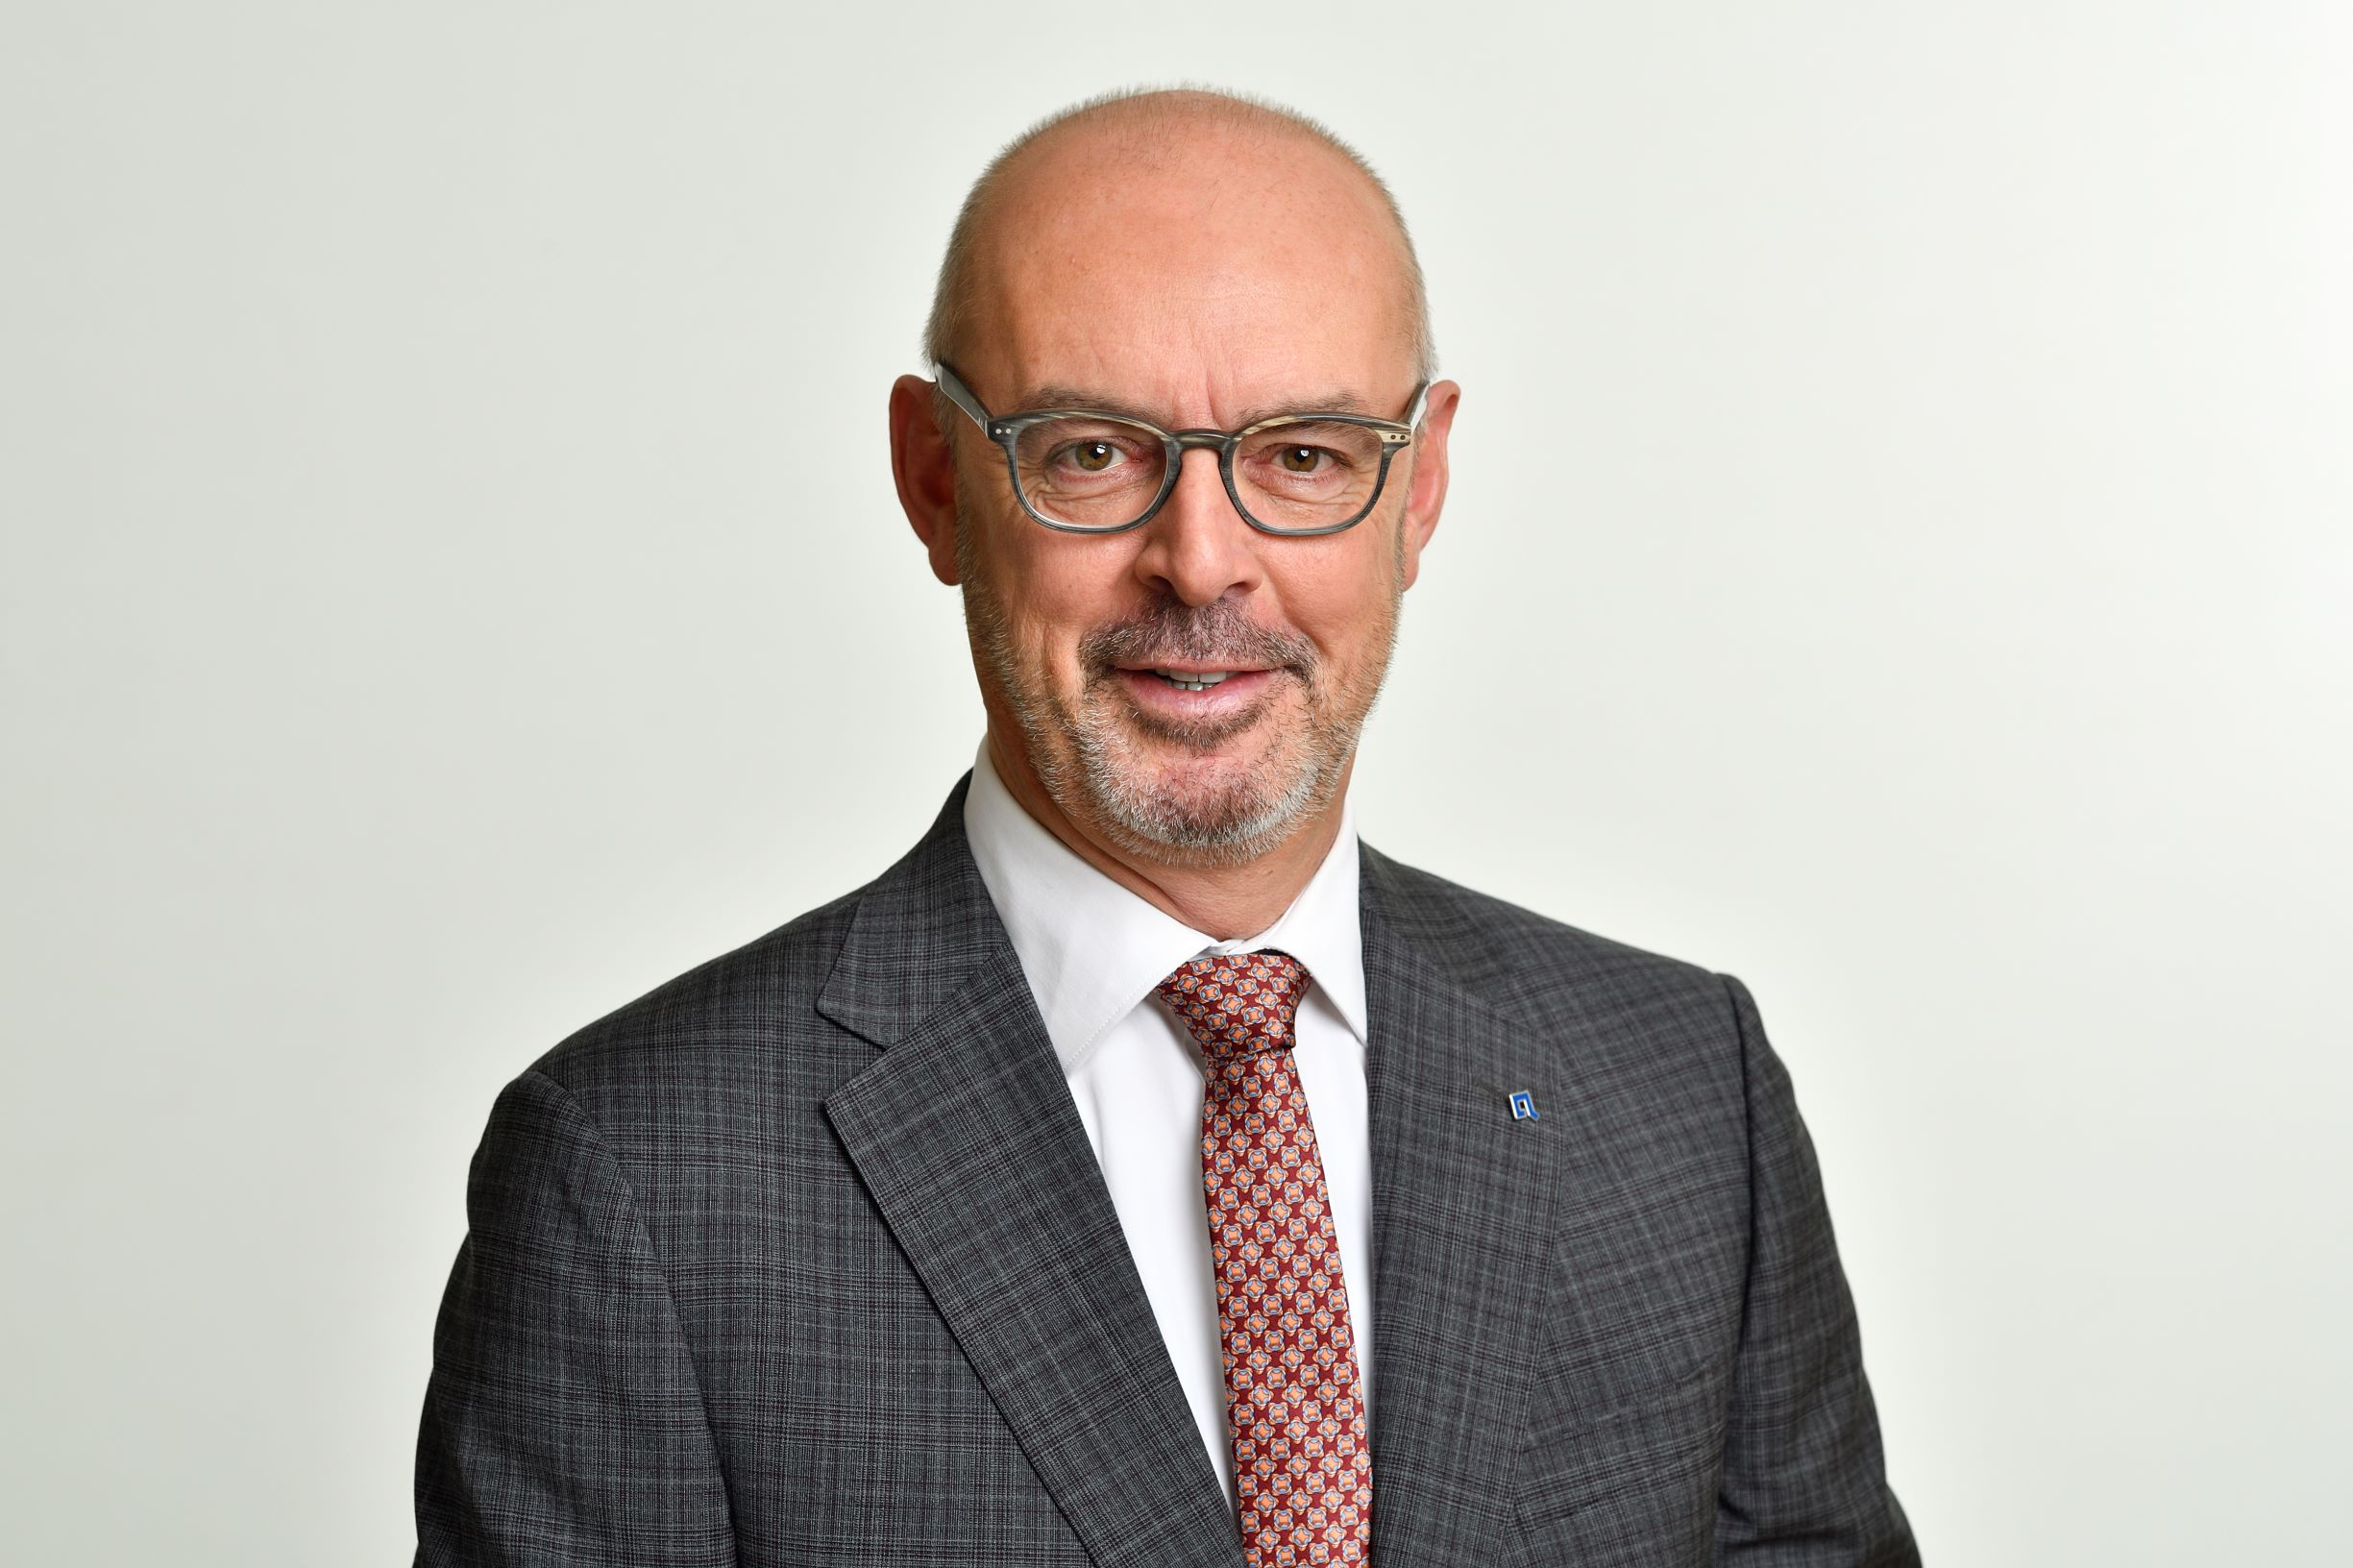 Gert De Winter, President of the Corporate Executive Committee of Baloise Group (Group CEO)